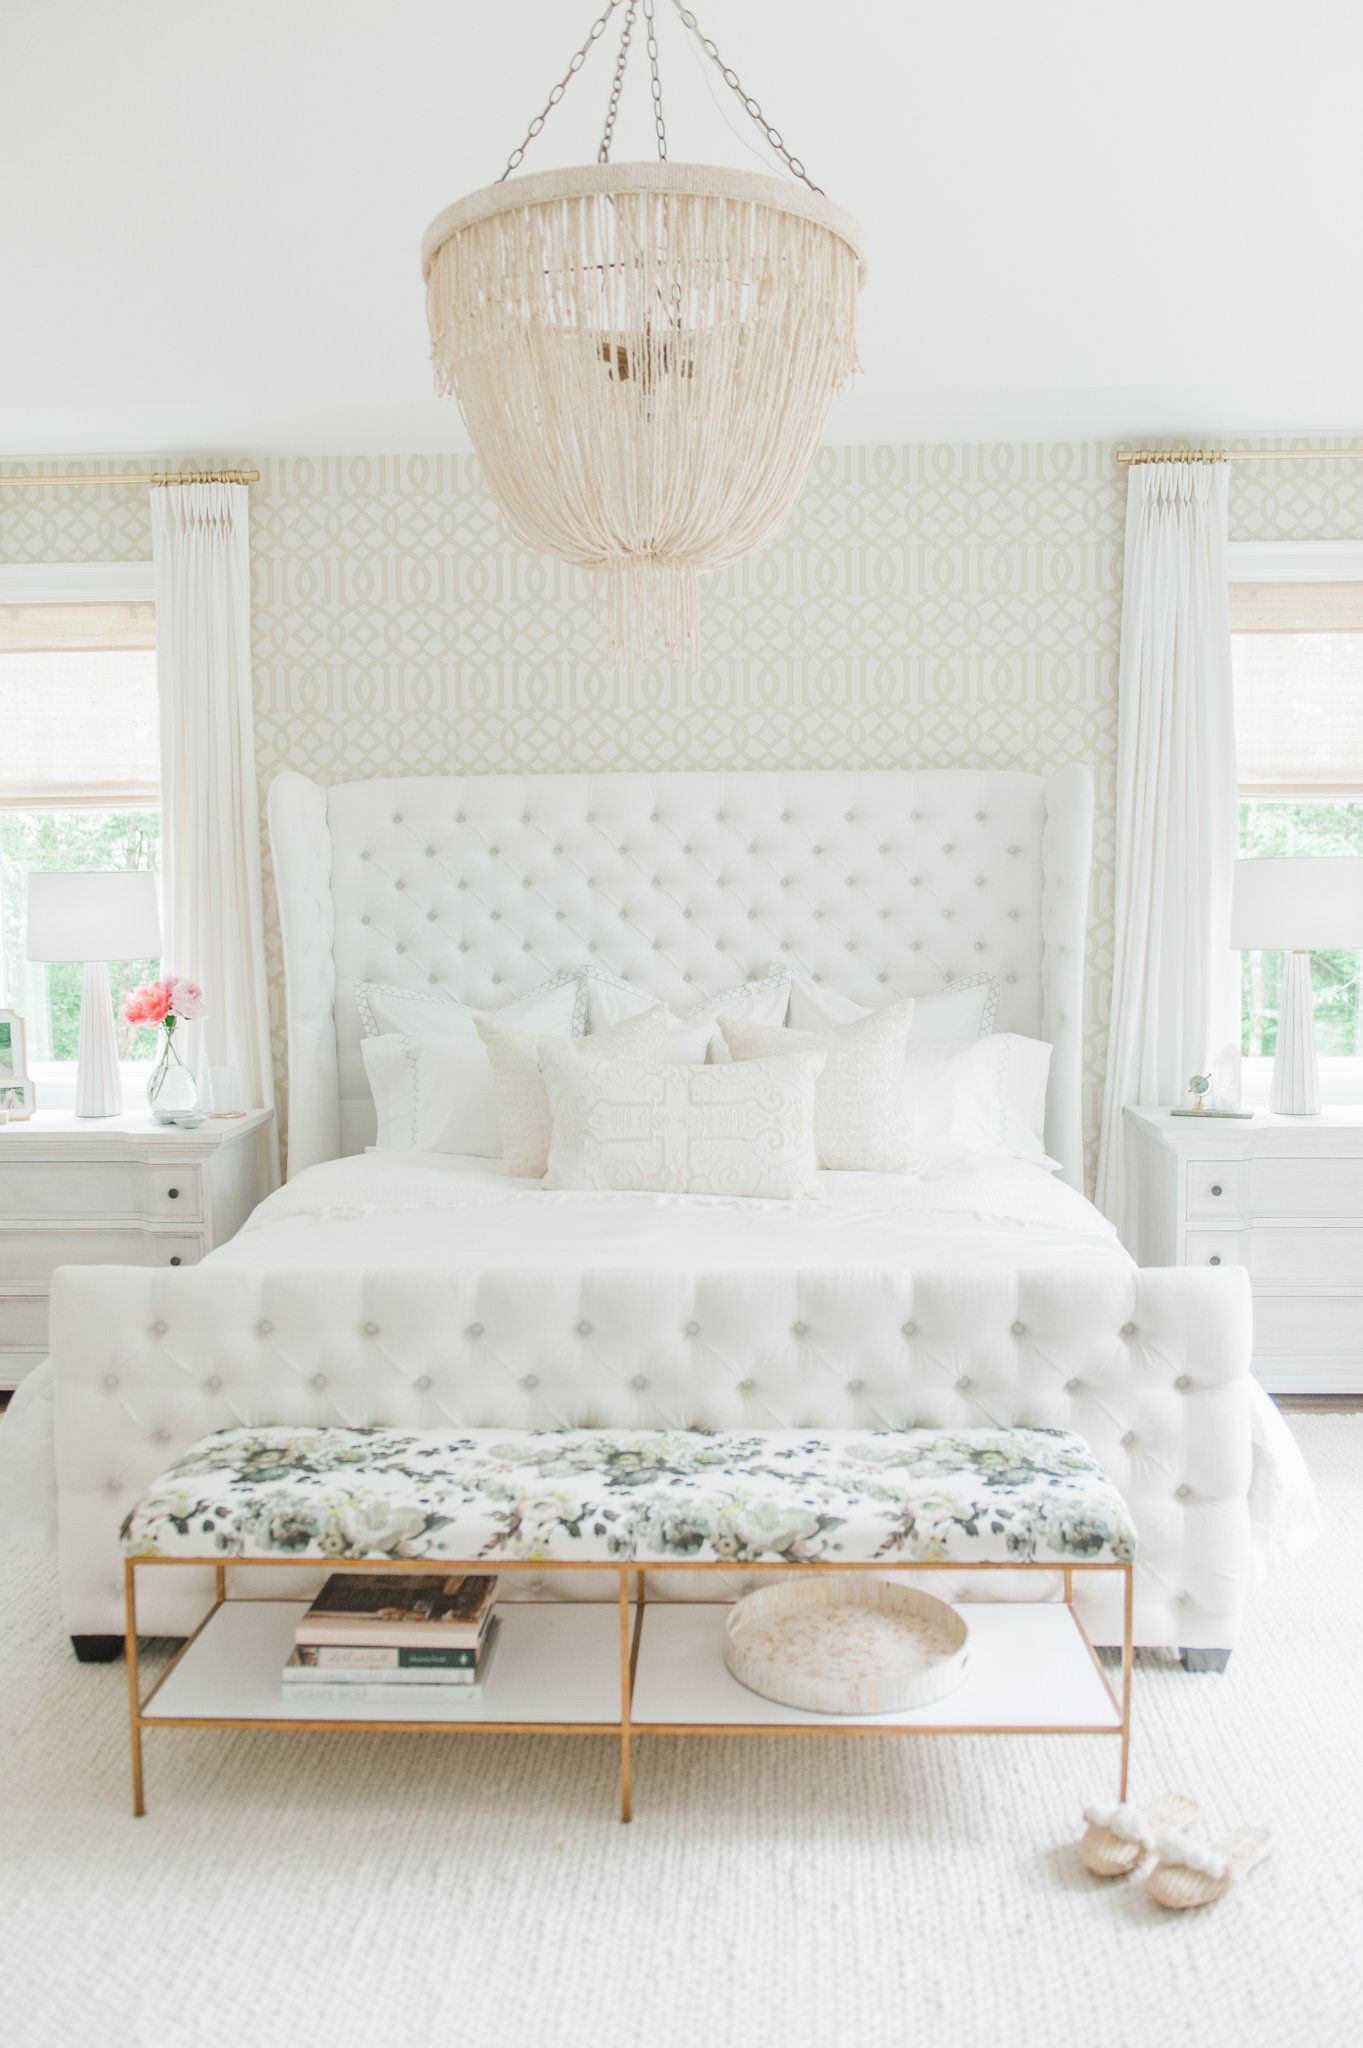 Our Bedroom Reveal | Home bedroom, Home decor, Glam bedroom